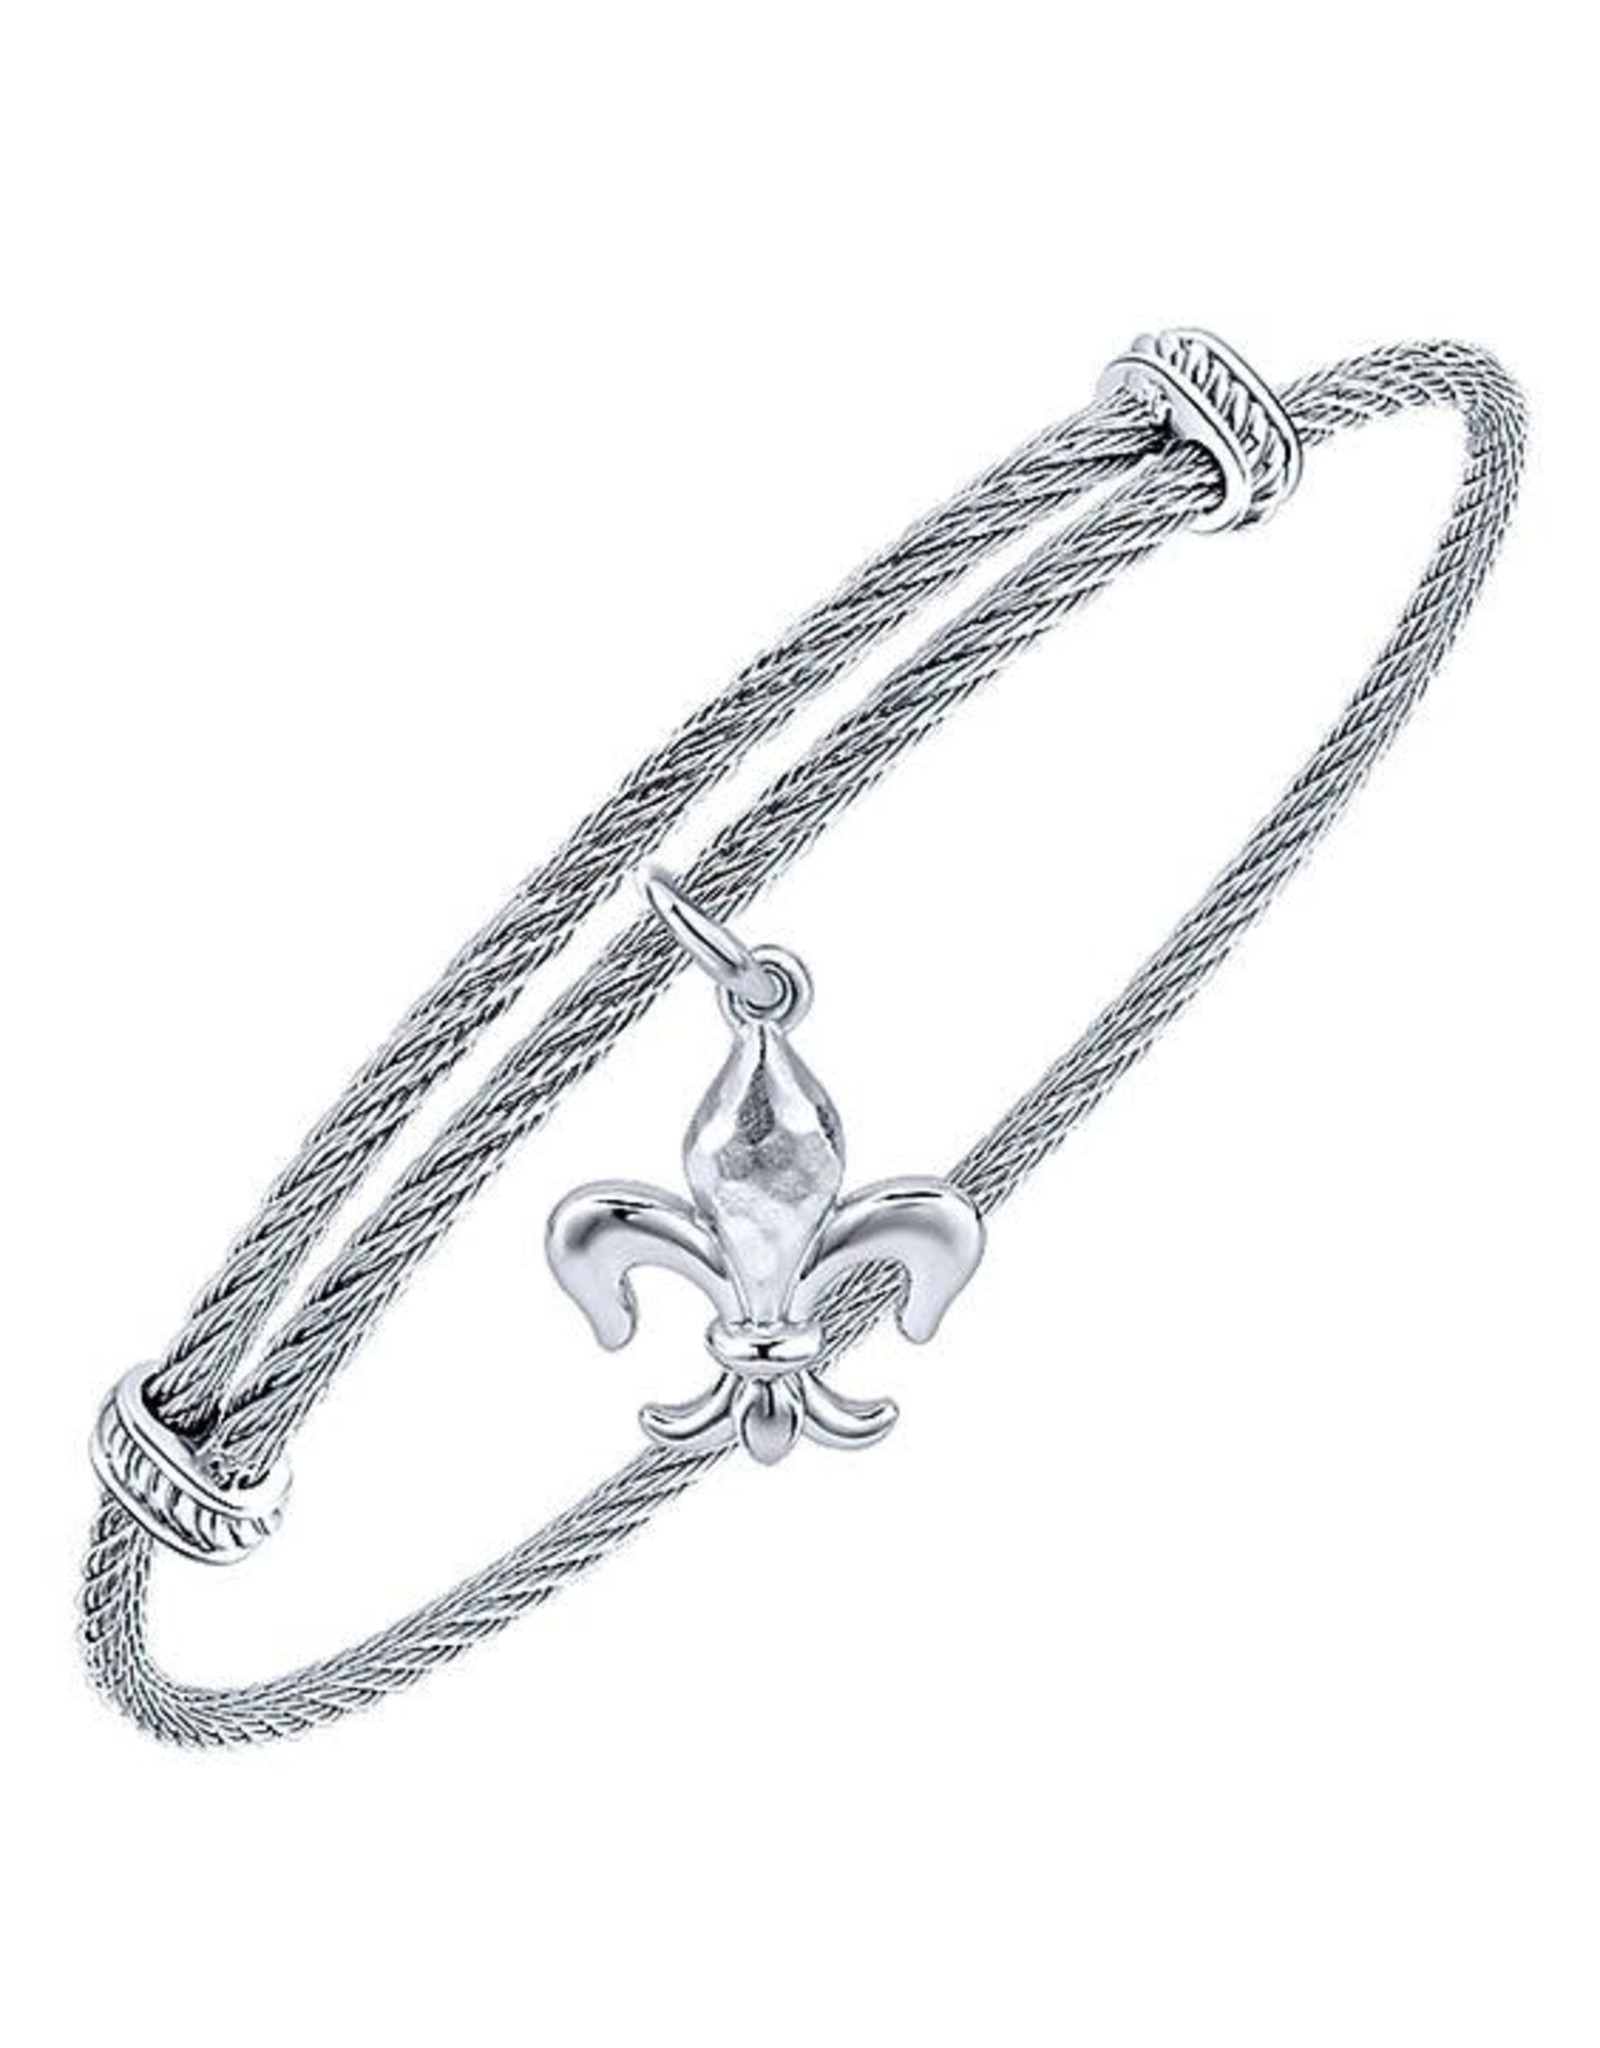 Adjustable Twisted Cable Stainless Steel Bangle Bracelet with Sterling Silver Fleur de Lis Charm